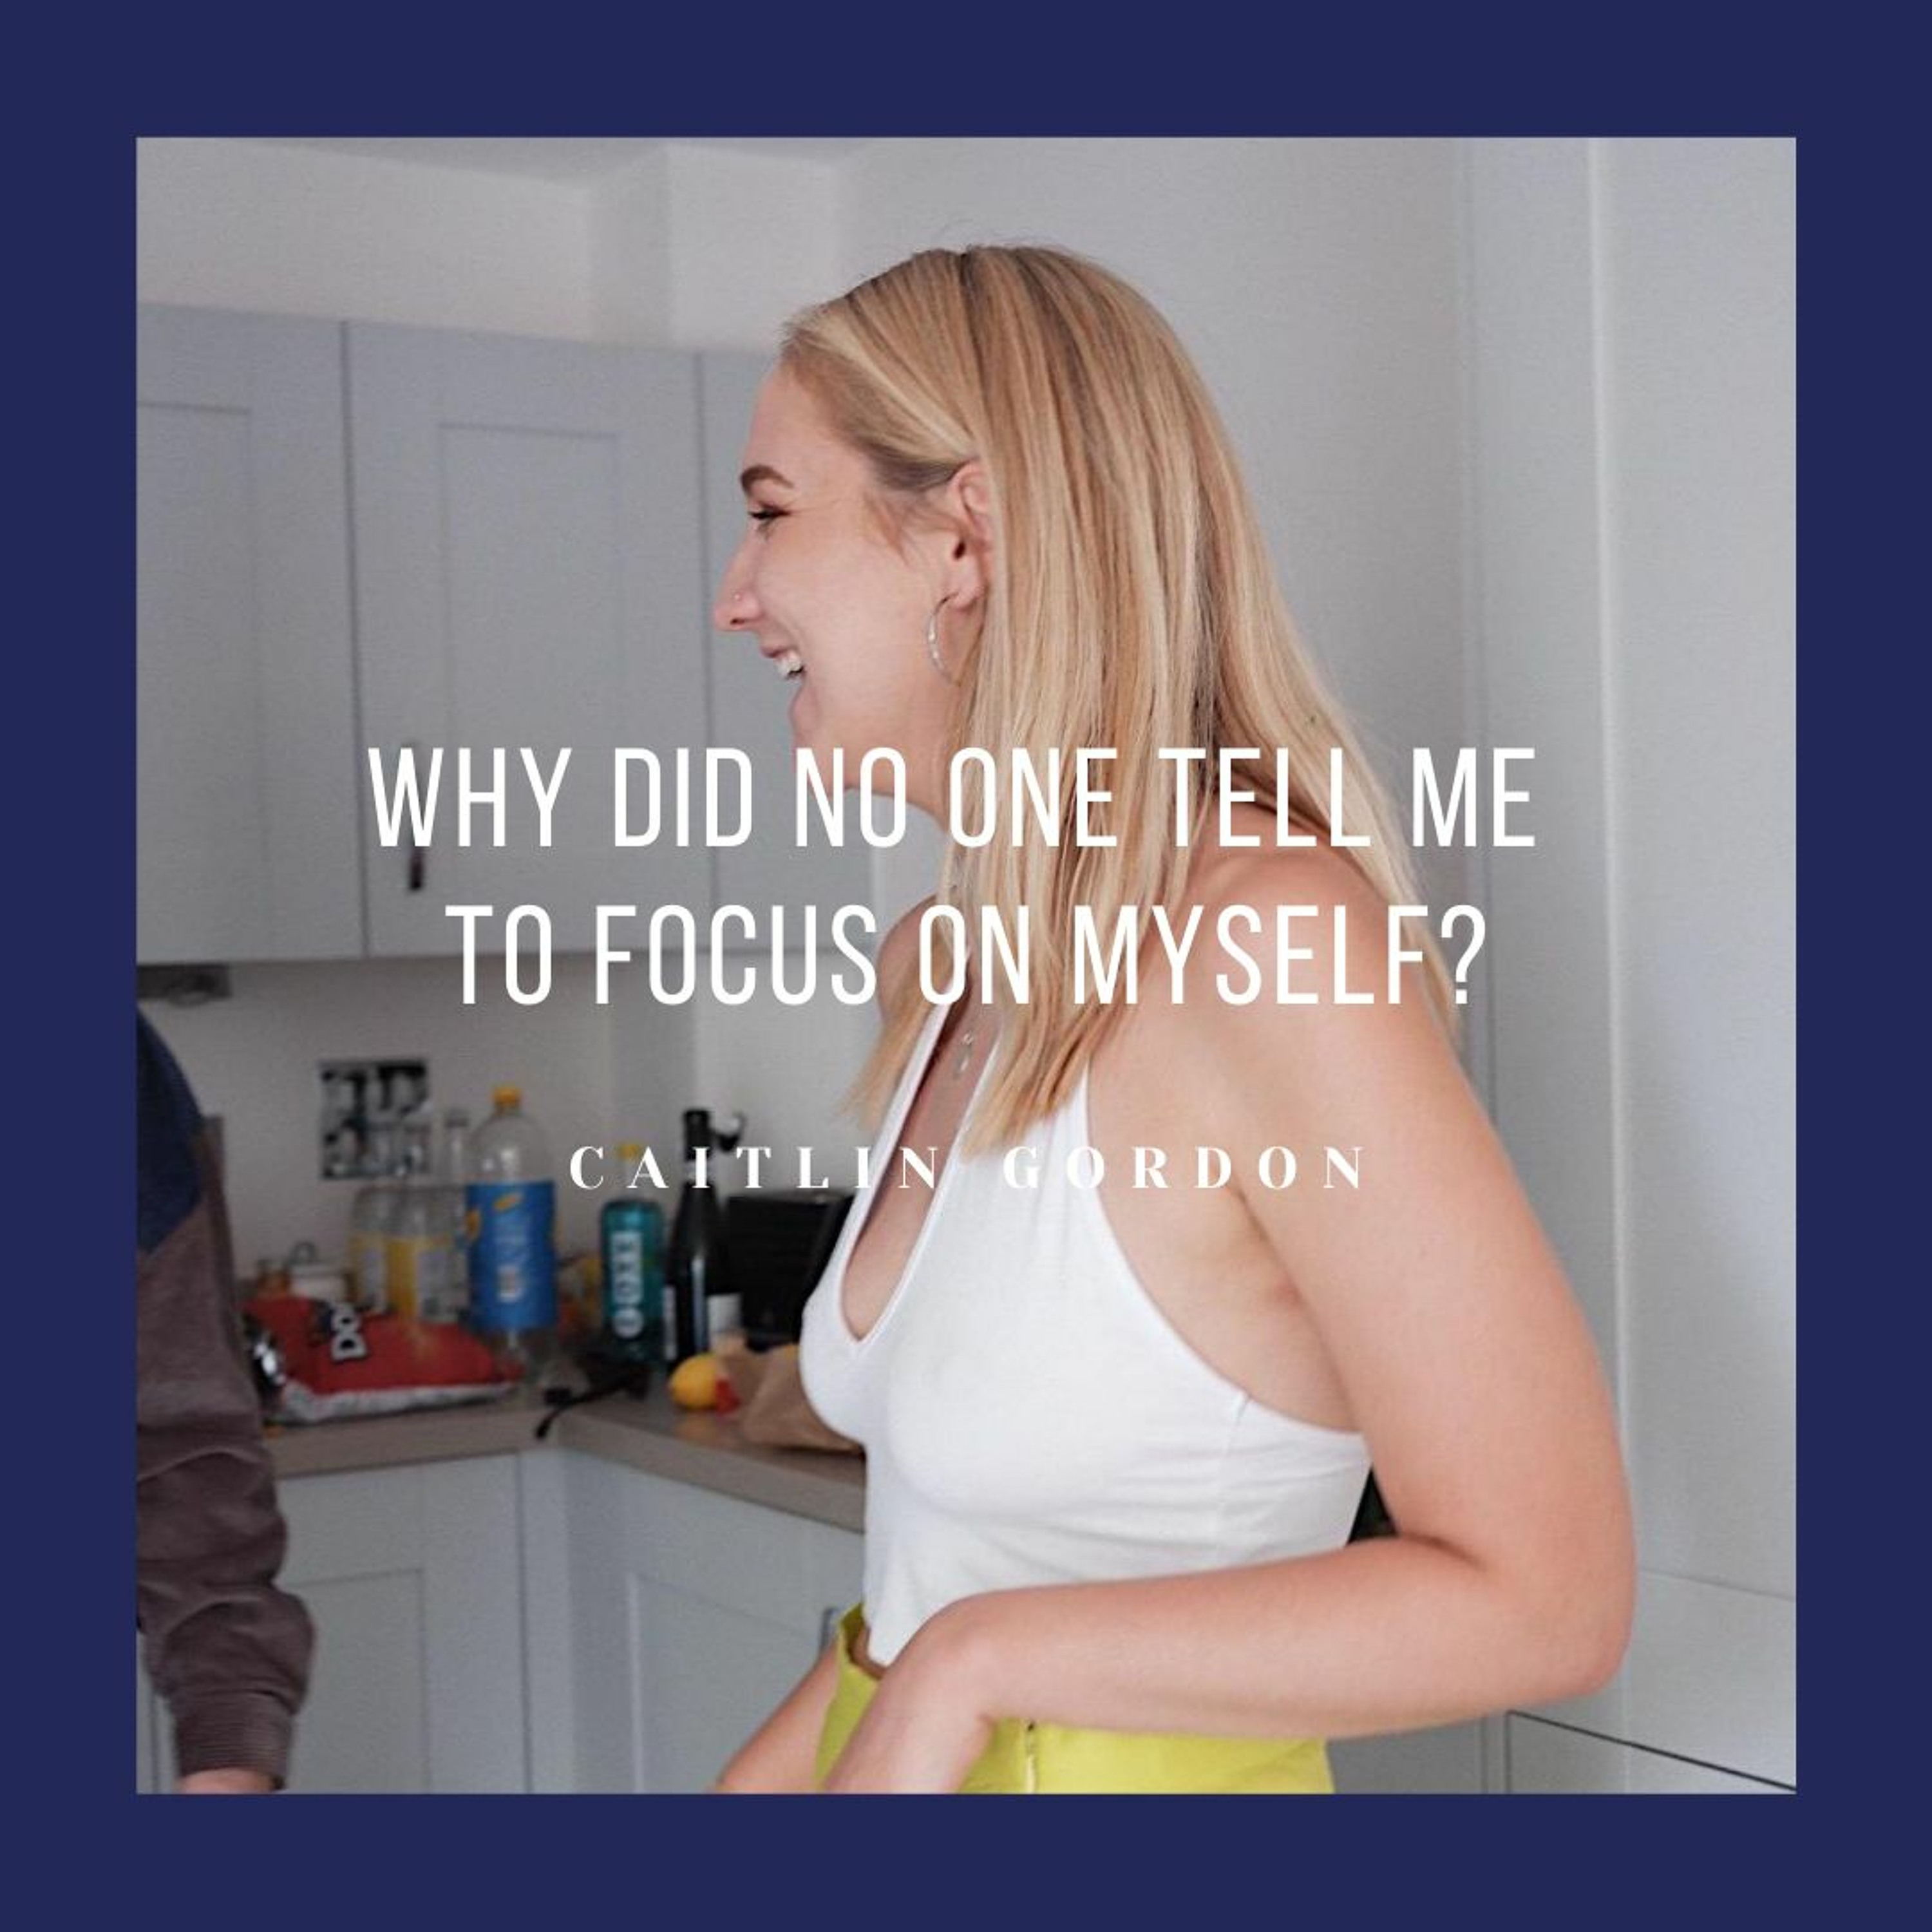 #5 Why did no one tell me to focus on myself?